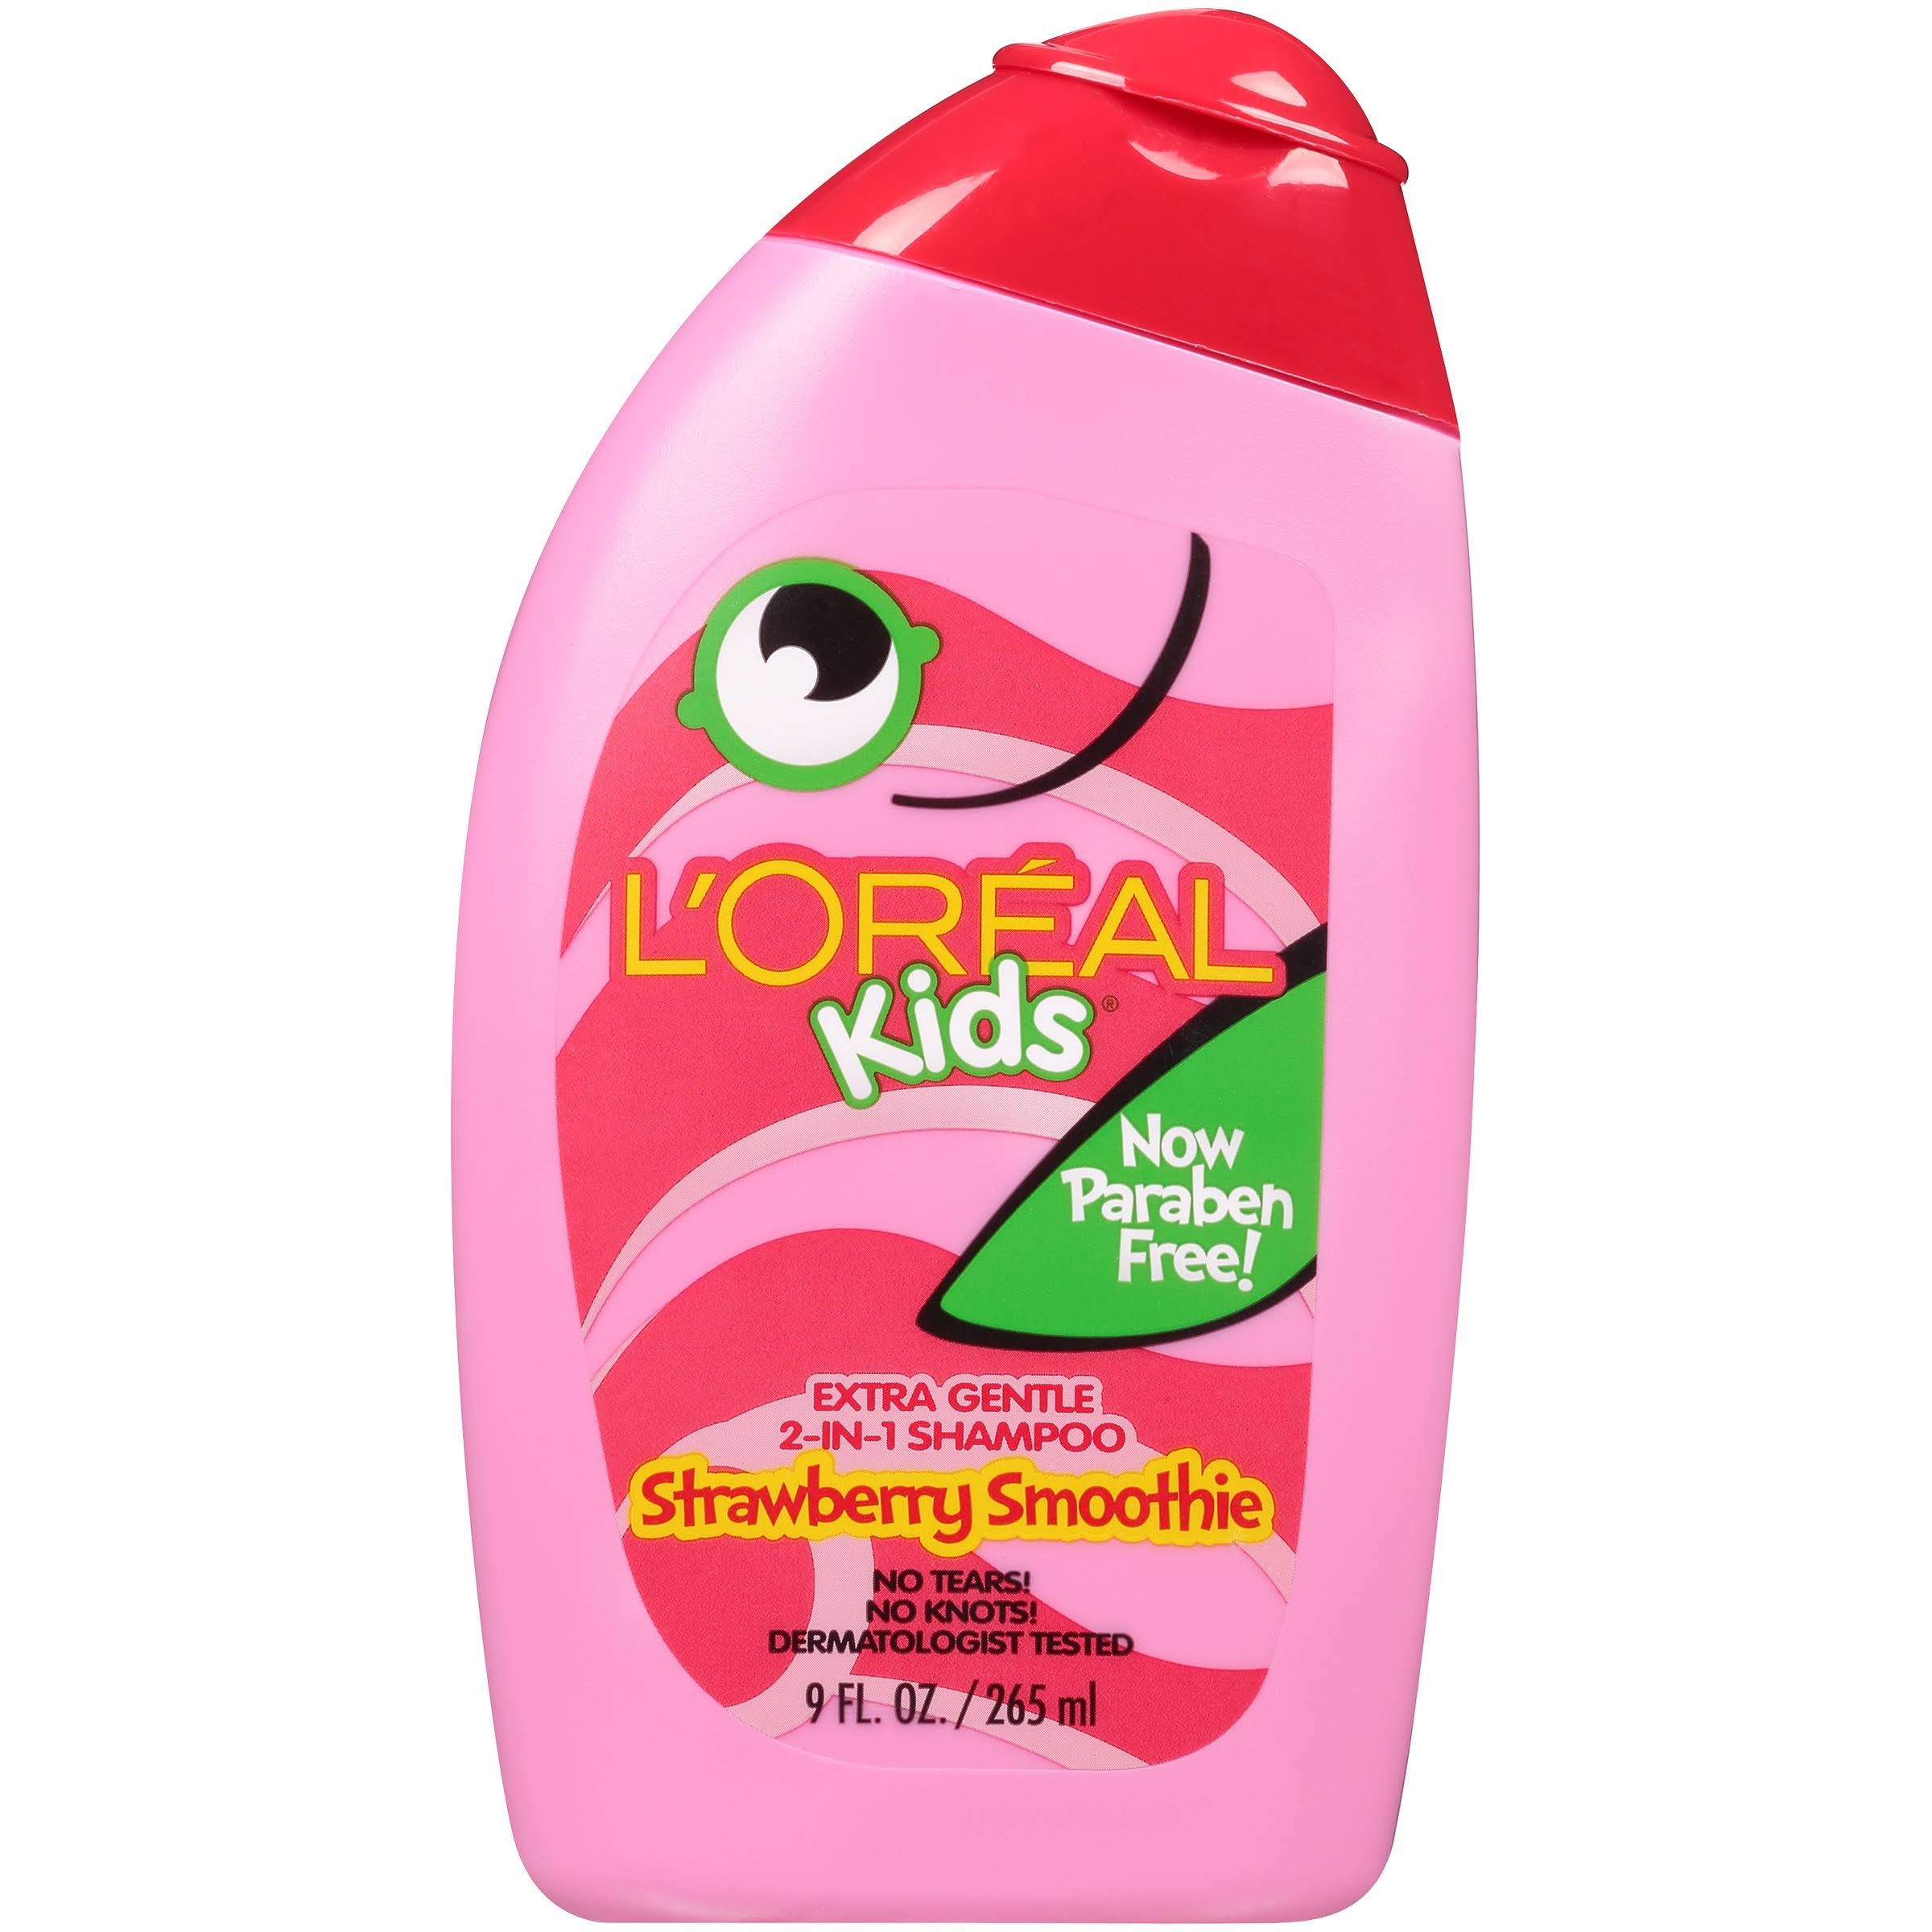 L'Oréal Kids 2-In-1 Shampoo - Strawberry Smoothie, 265ml